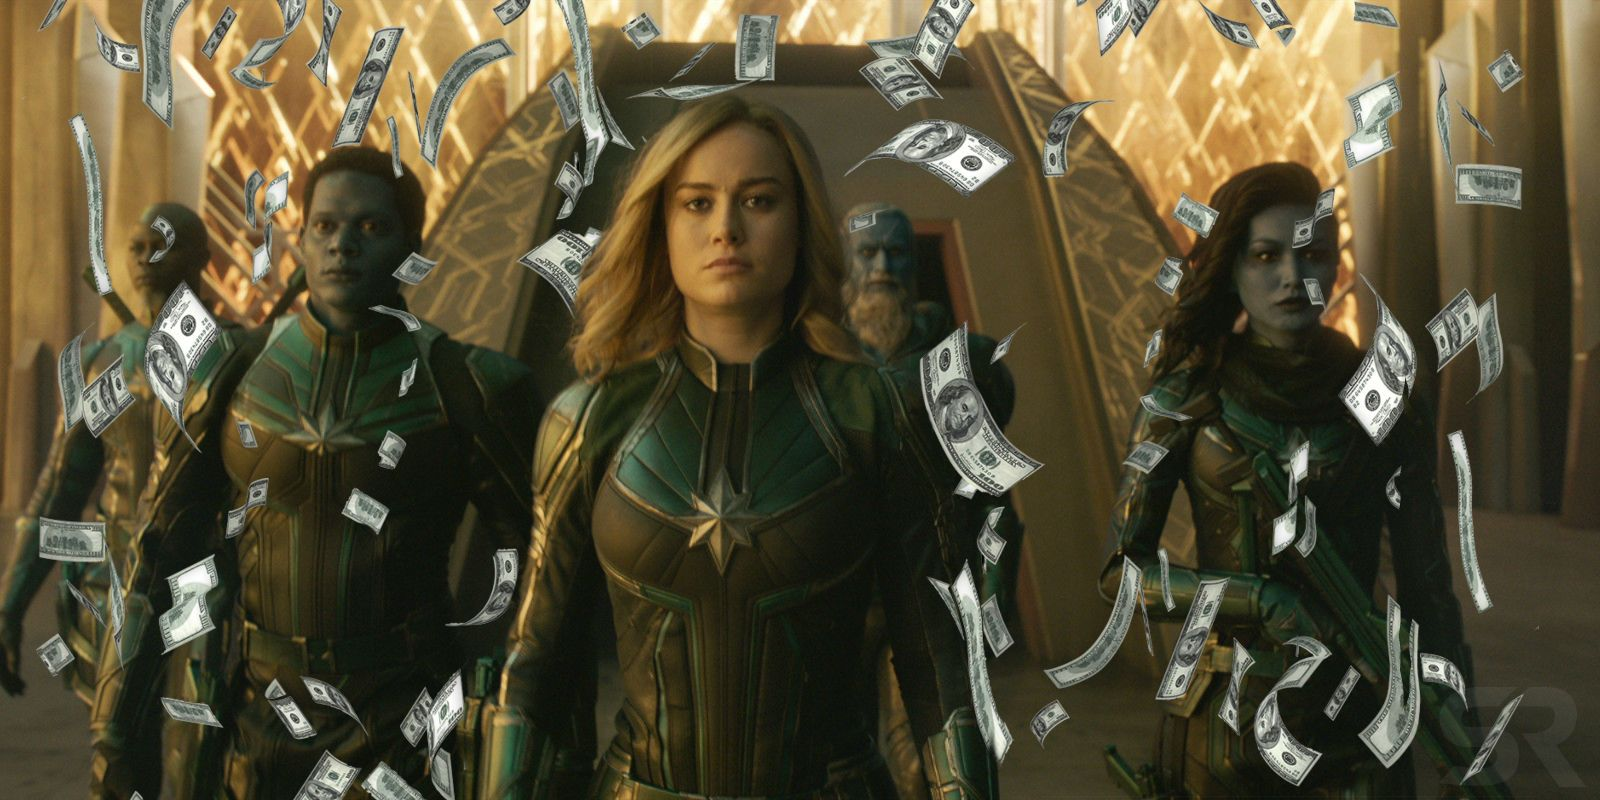 captain marvel projected for $160m opening weekend | screenrant